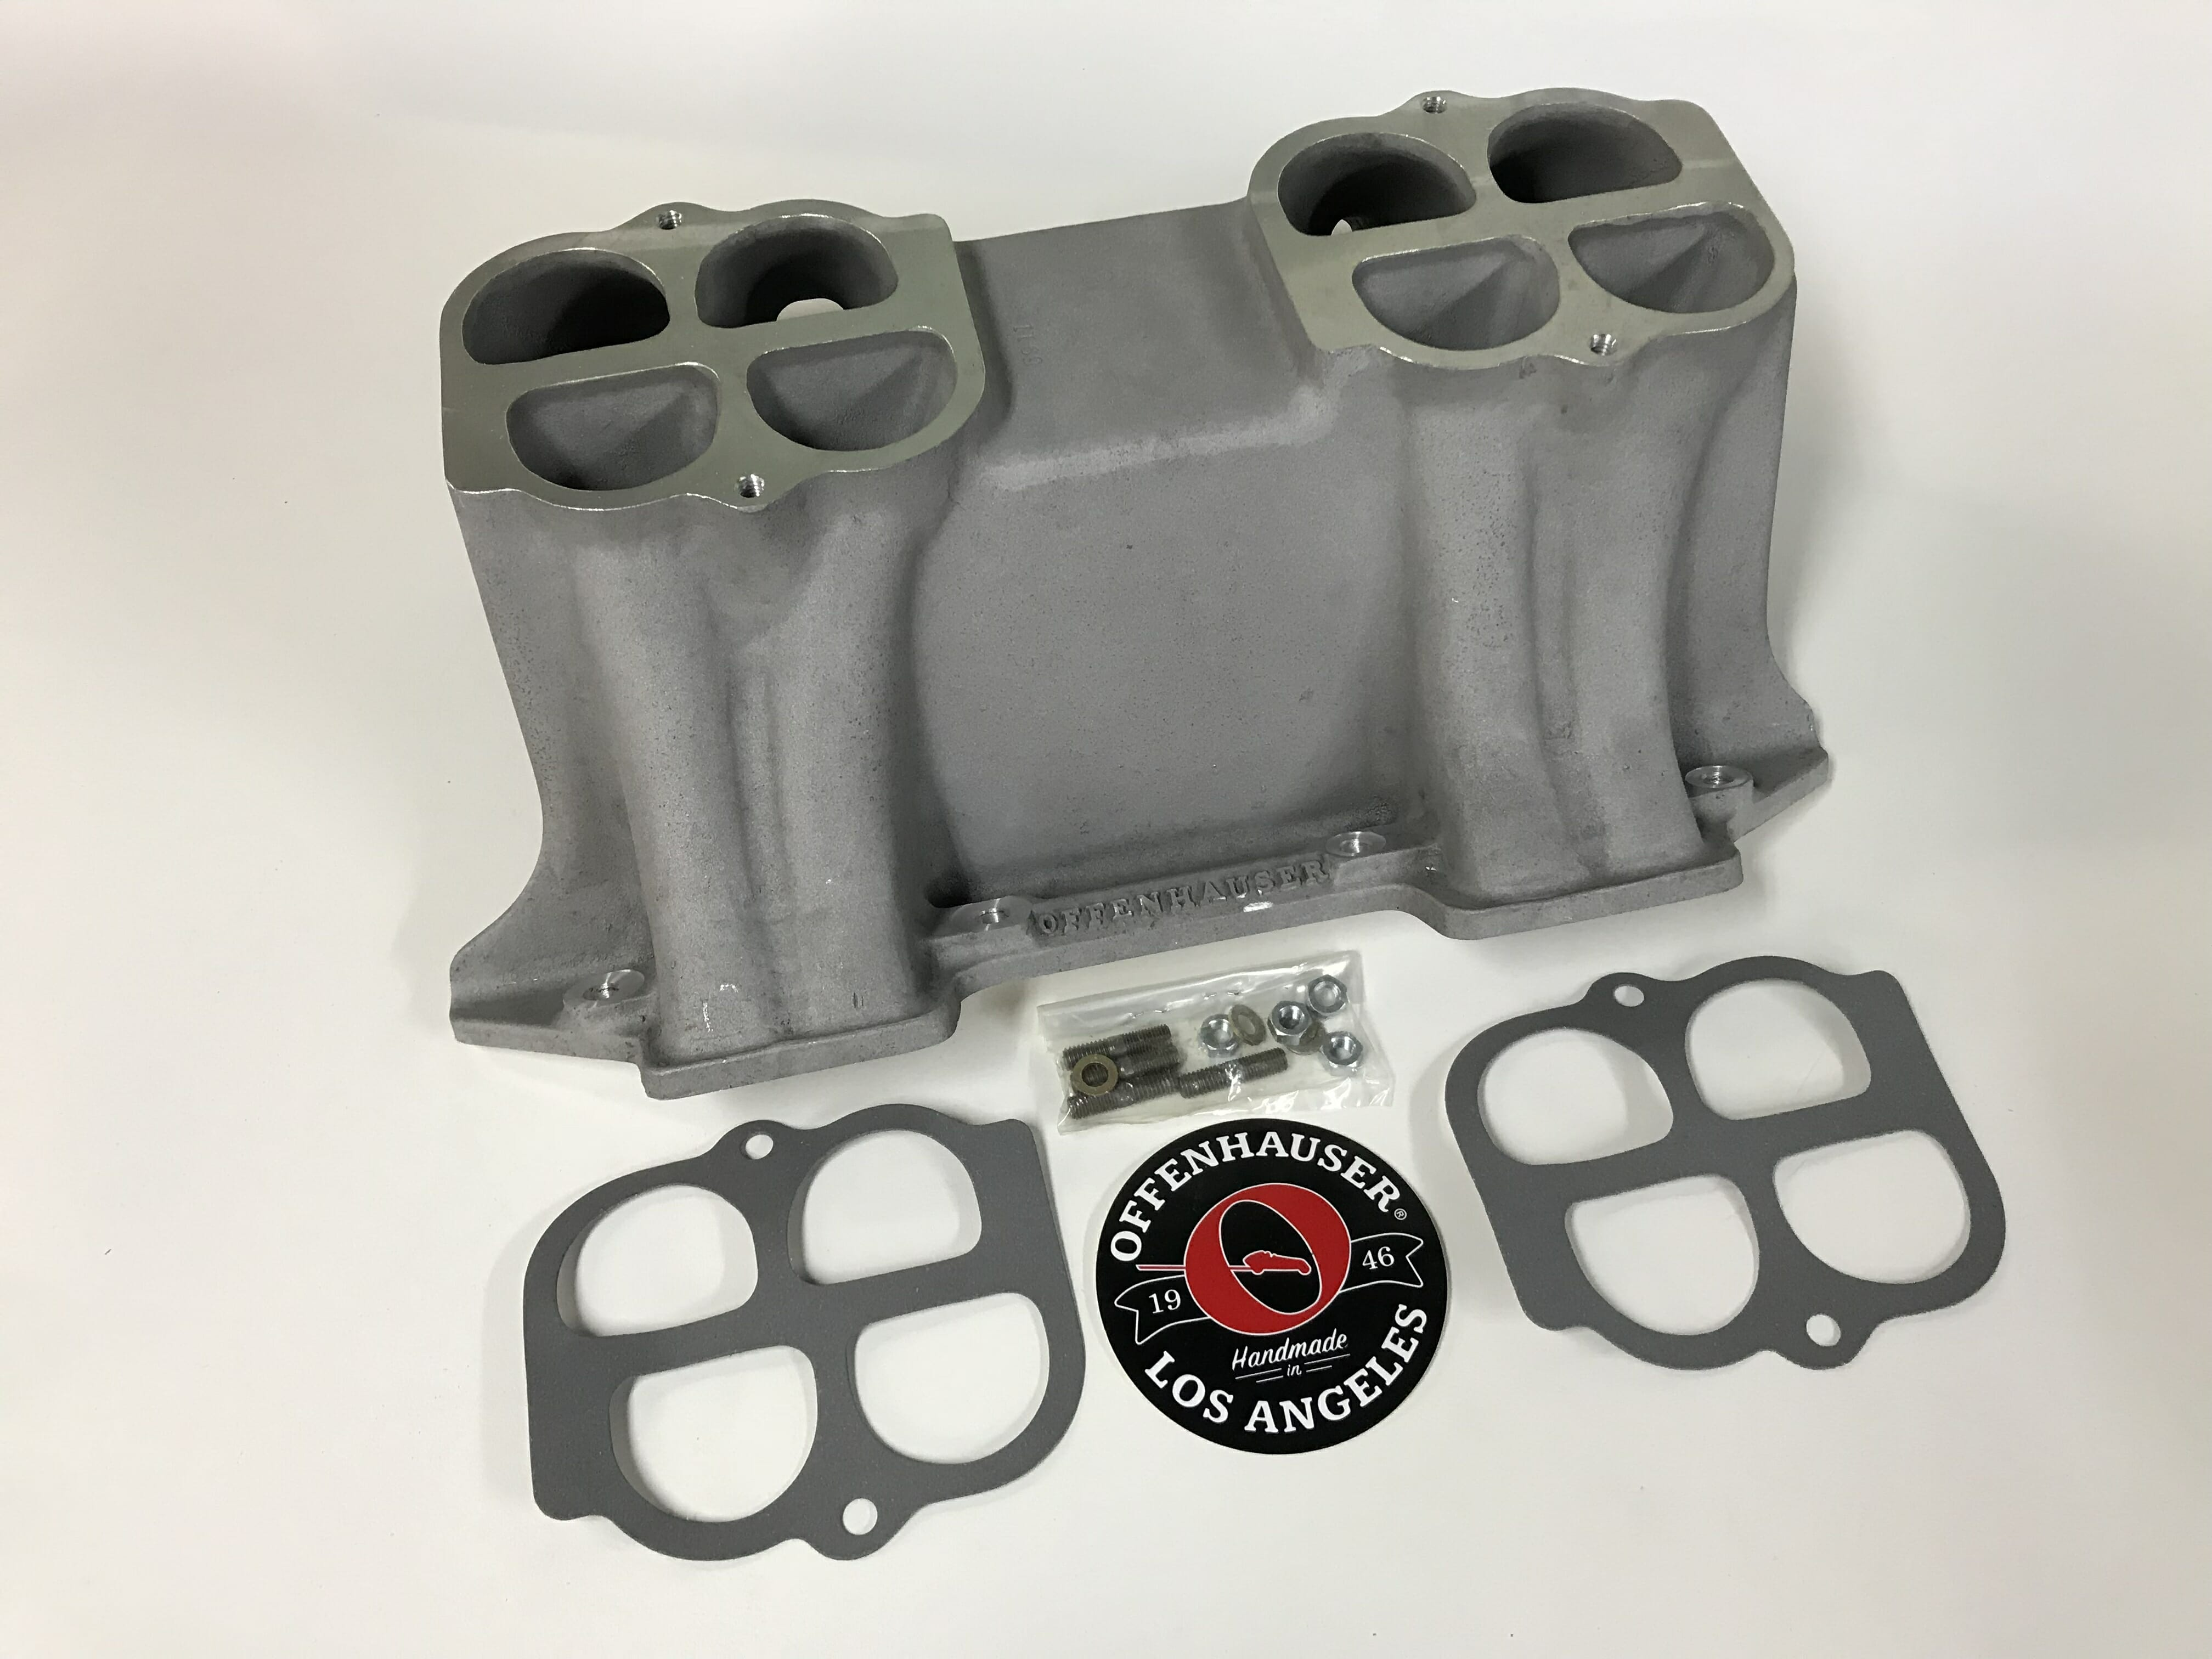 Offenhauser Chrysler 413-440 BASE ONLY Competition Manifold Chrysler 413-440 BASE ONLY